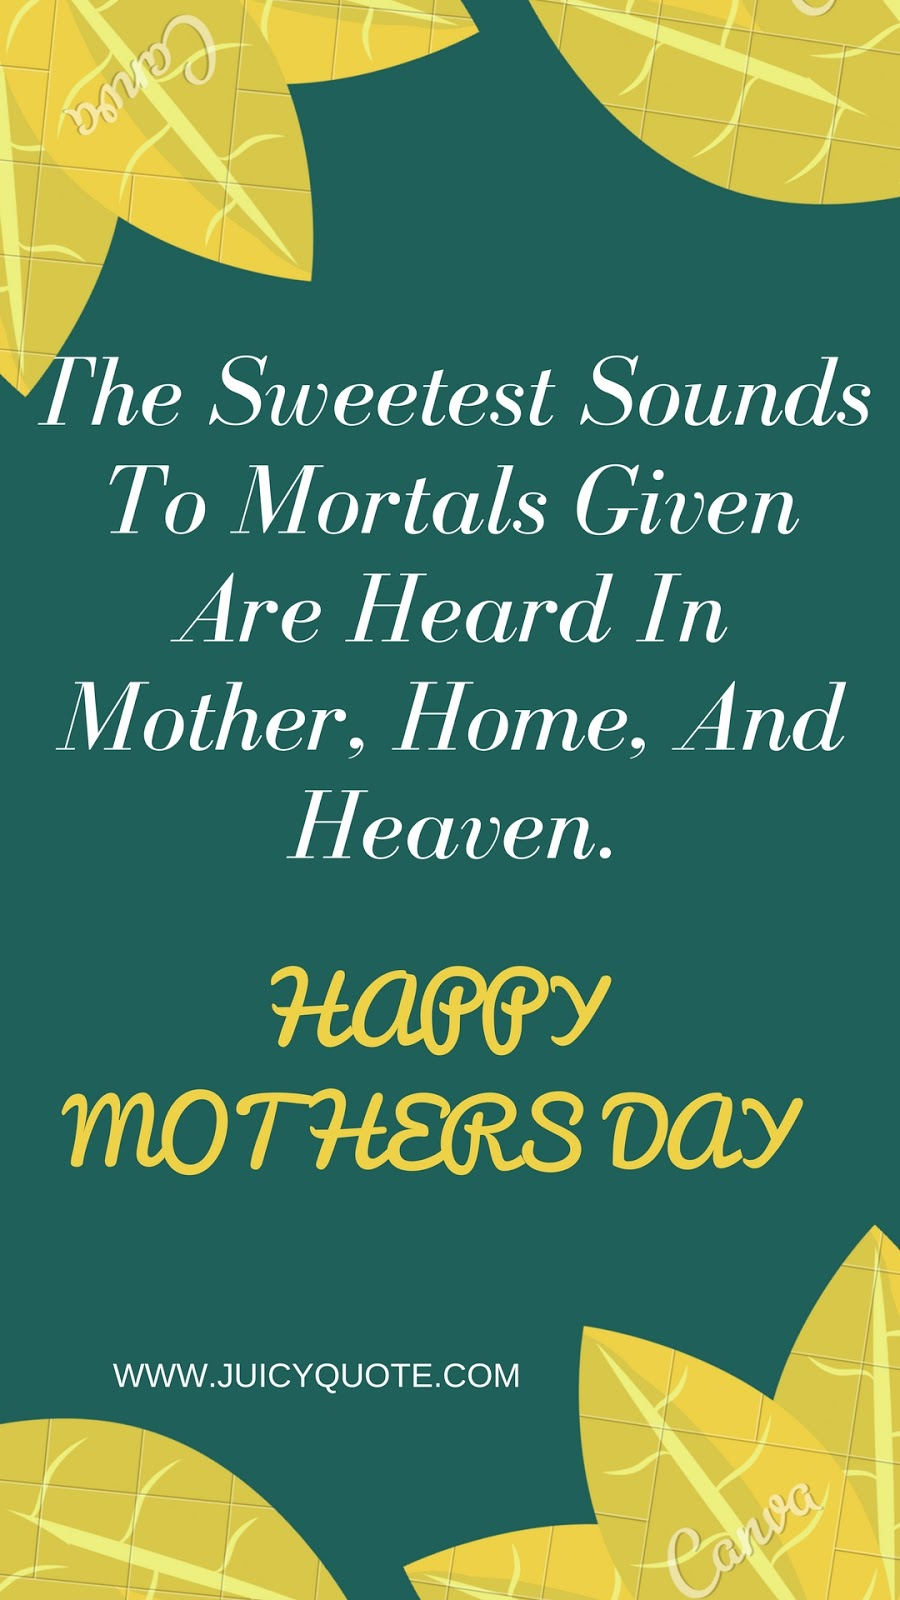 quotes for mother s day.html